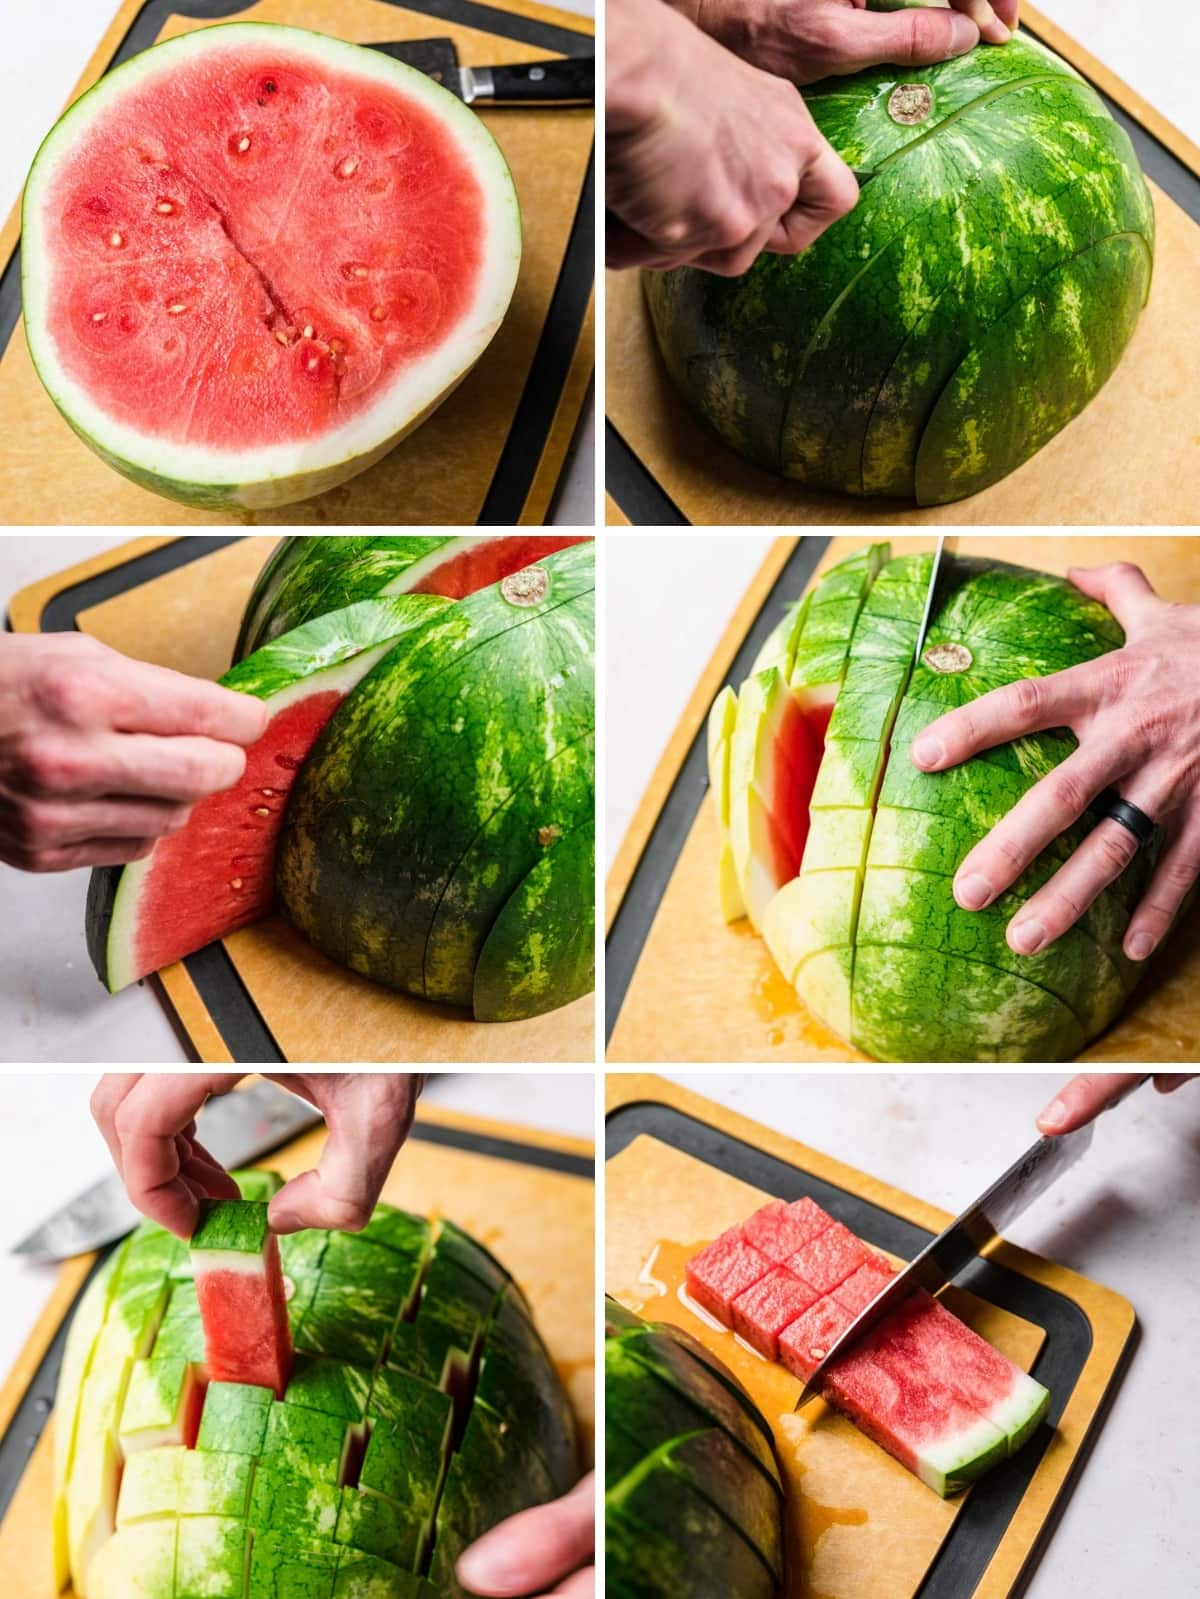 six photos showing how to slice watermelon into cubes.